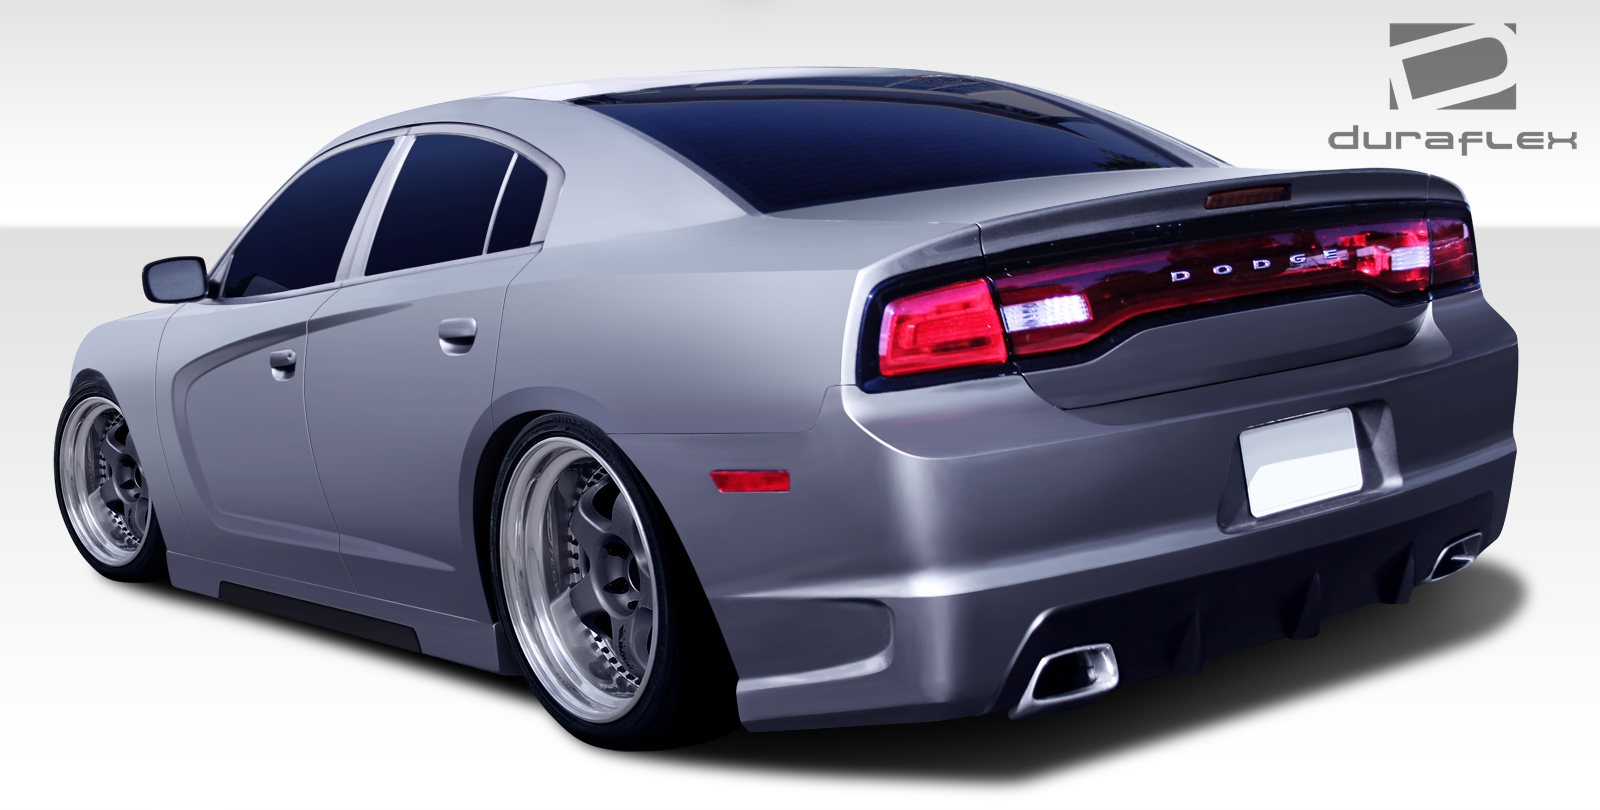 Peep this extreme dimension body kit and hood for 2011 2012 dodge charger forums